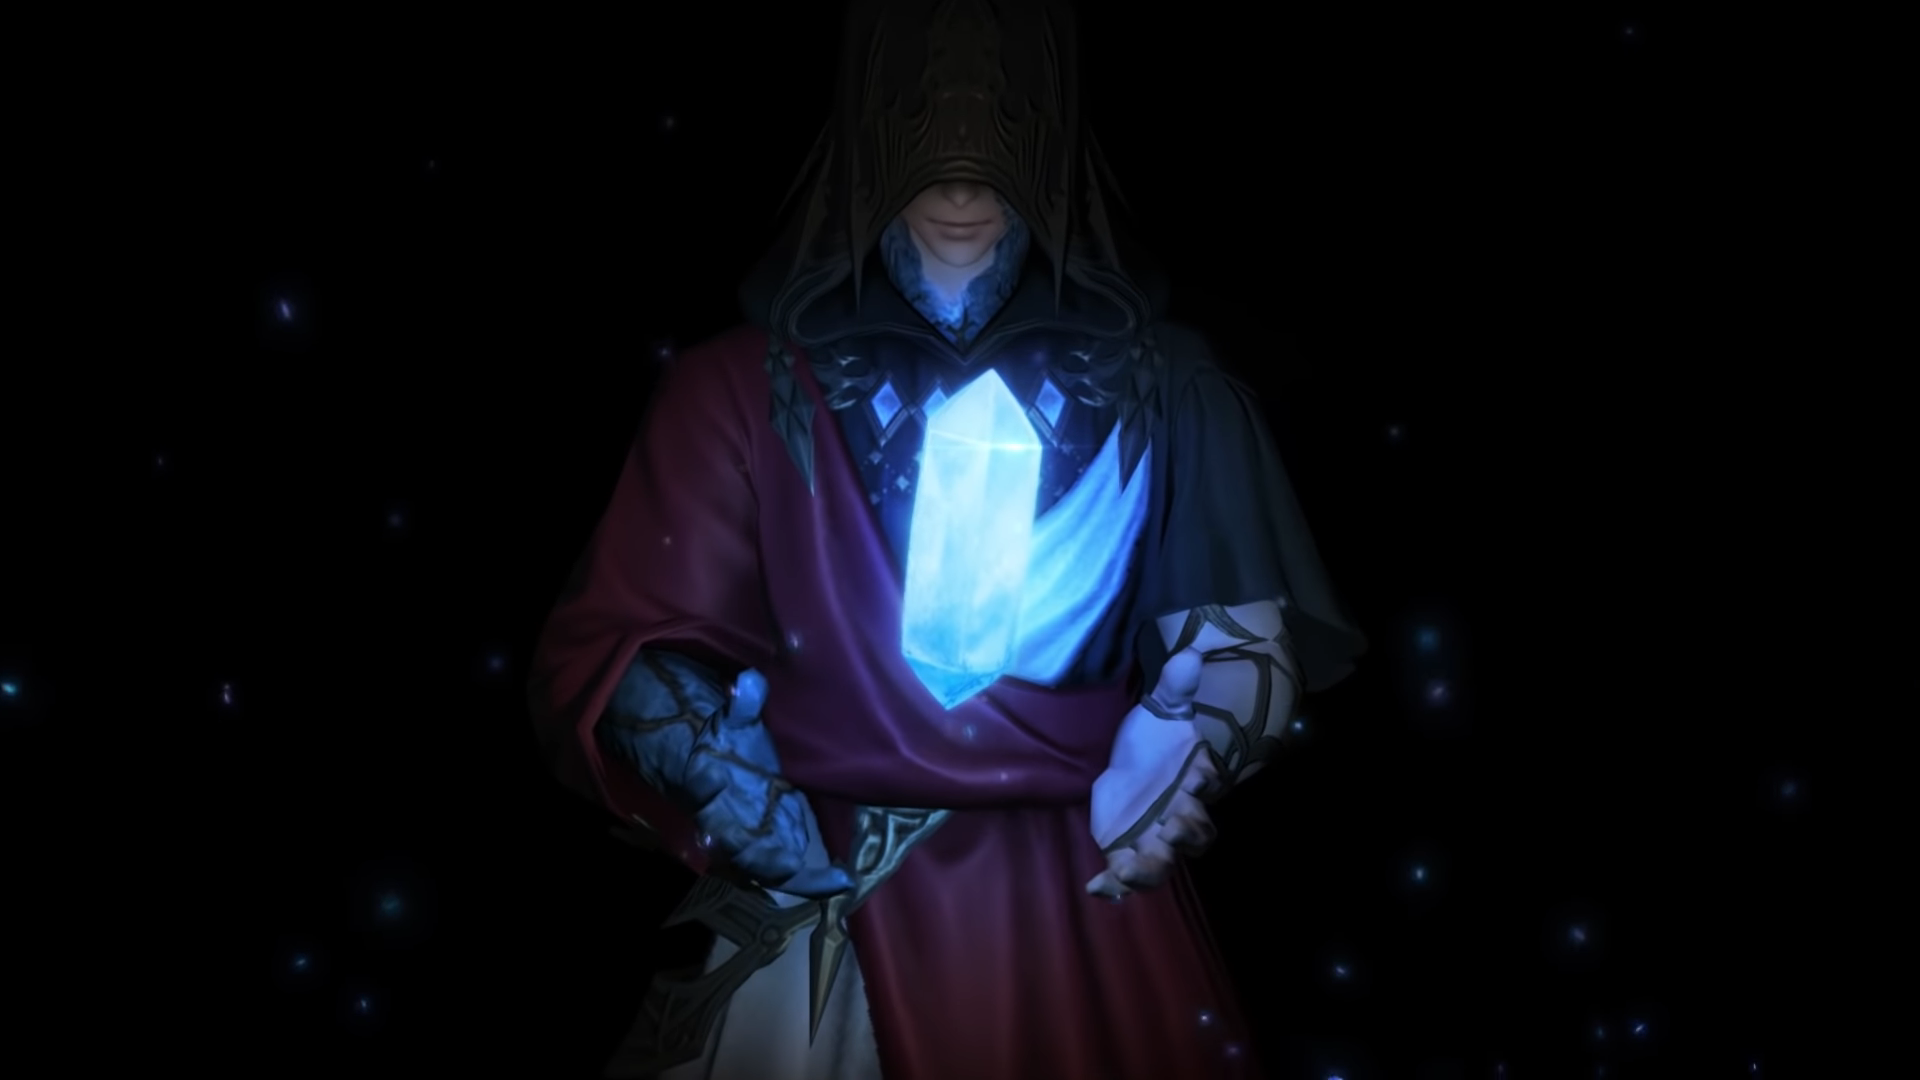 A robed figure holds up a blue crystal